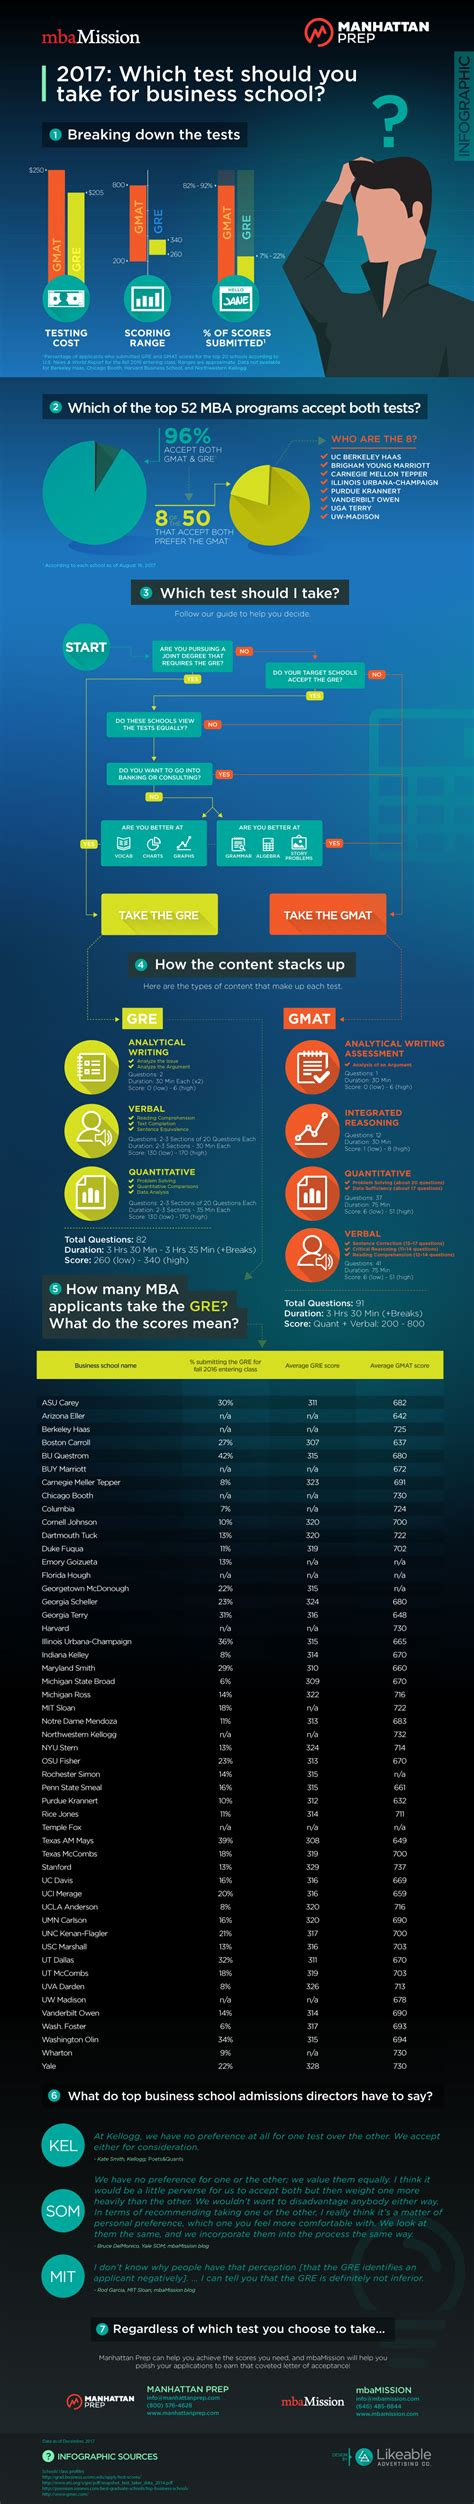 Gre Scores For Mba Programs by Mbamission And Manhattan Prep S Gmat Vs Gre Infographic